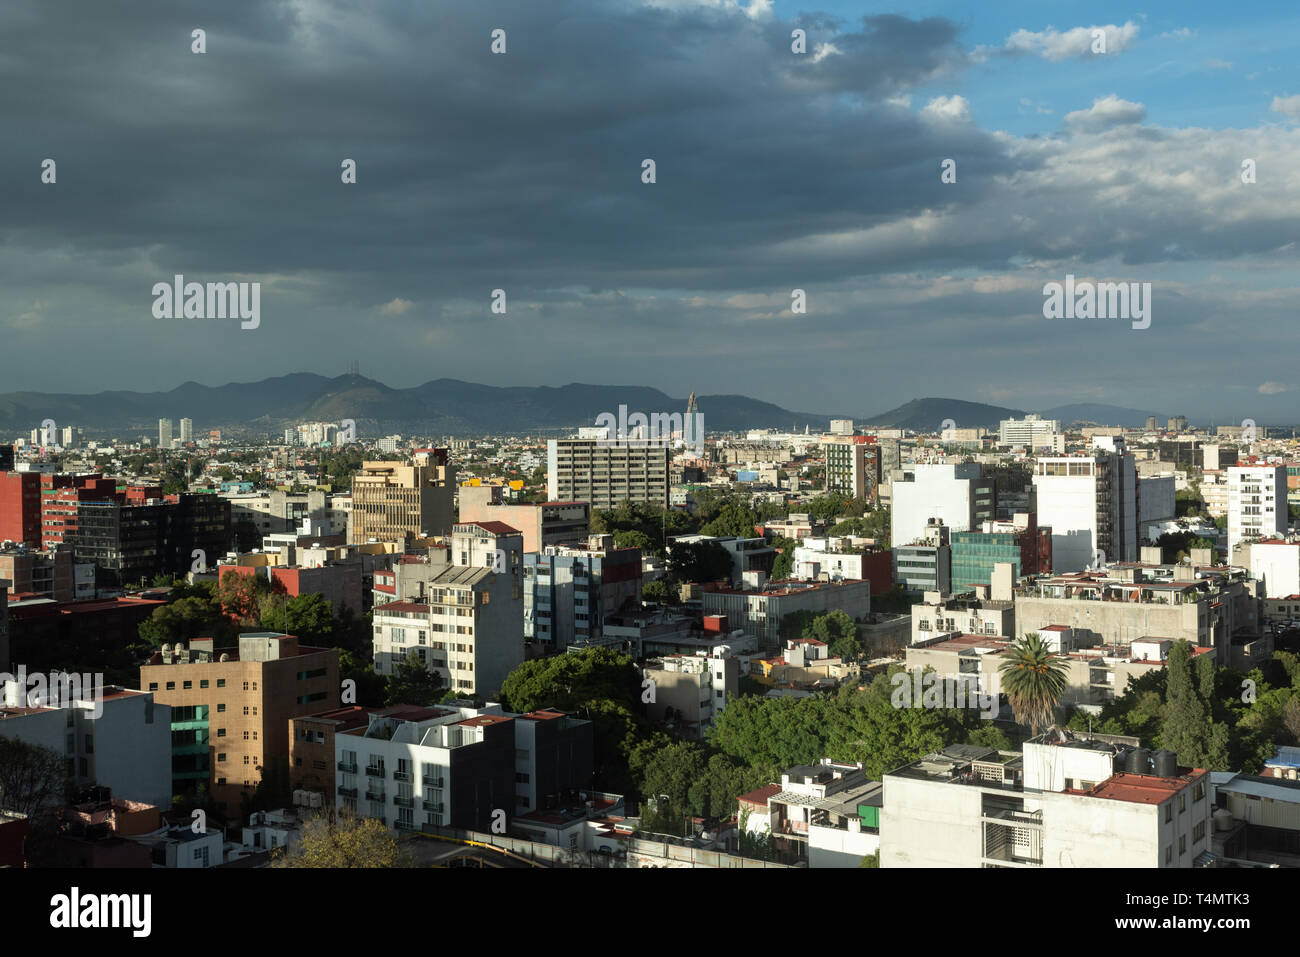 Mexico City is one of the largest city in the world. It is estimated that 32M people live in the city. - Stock Image